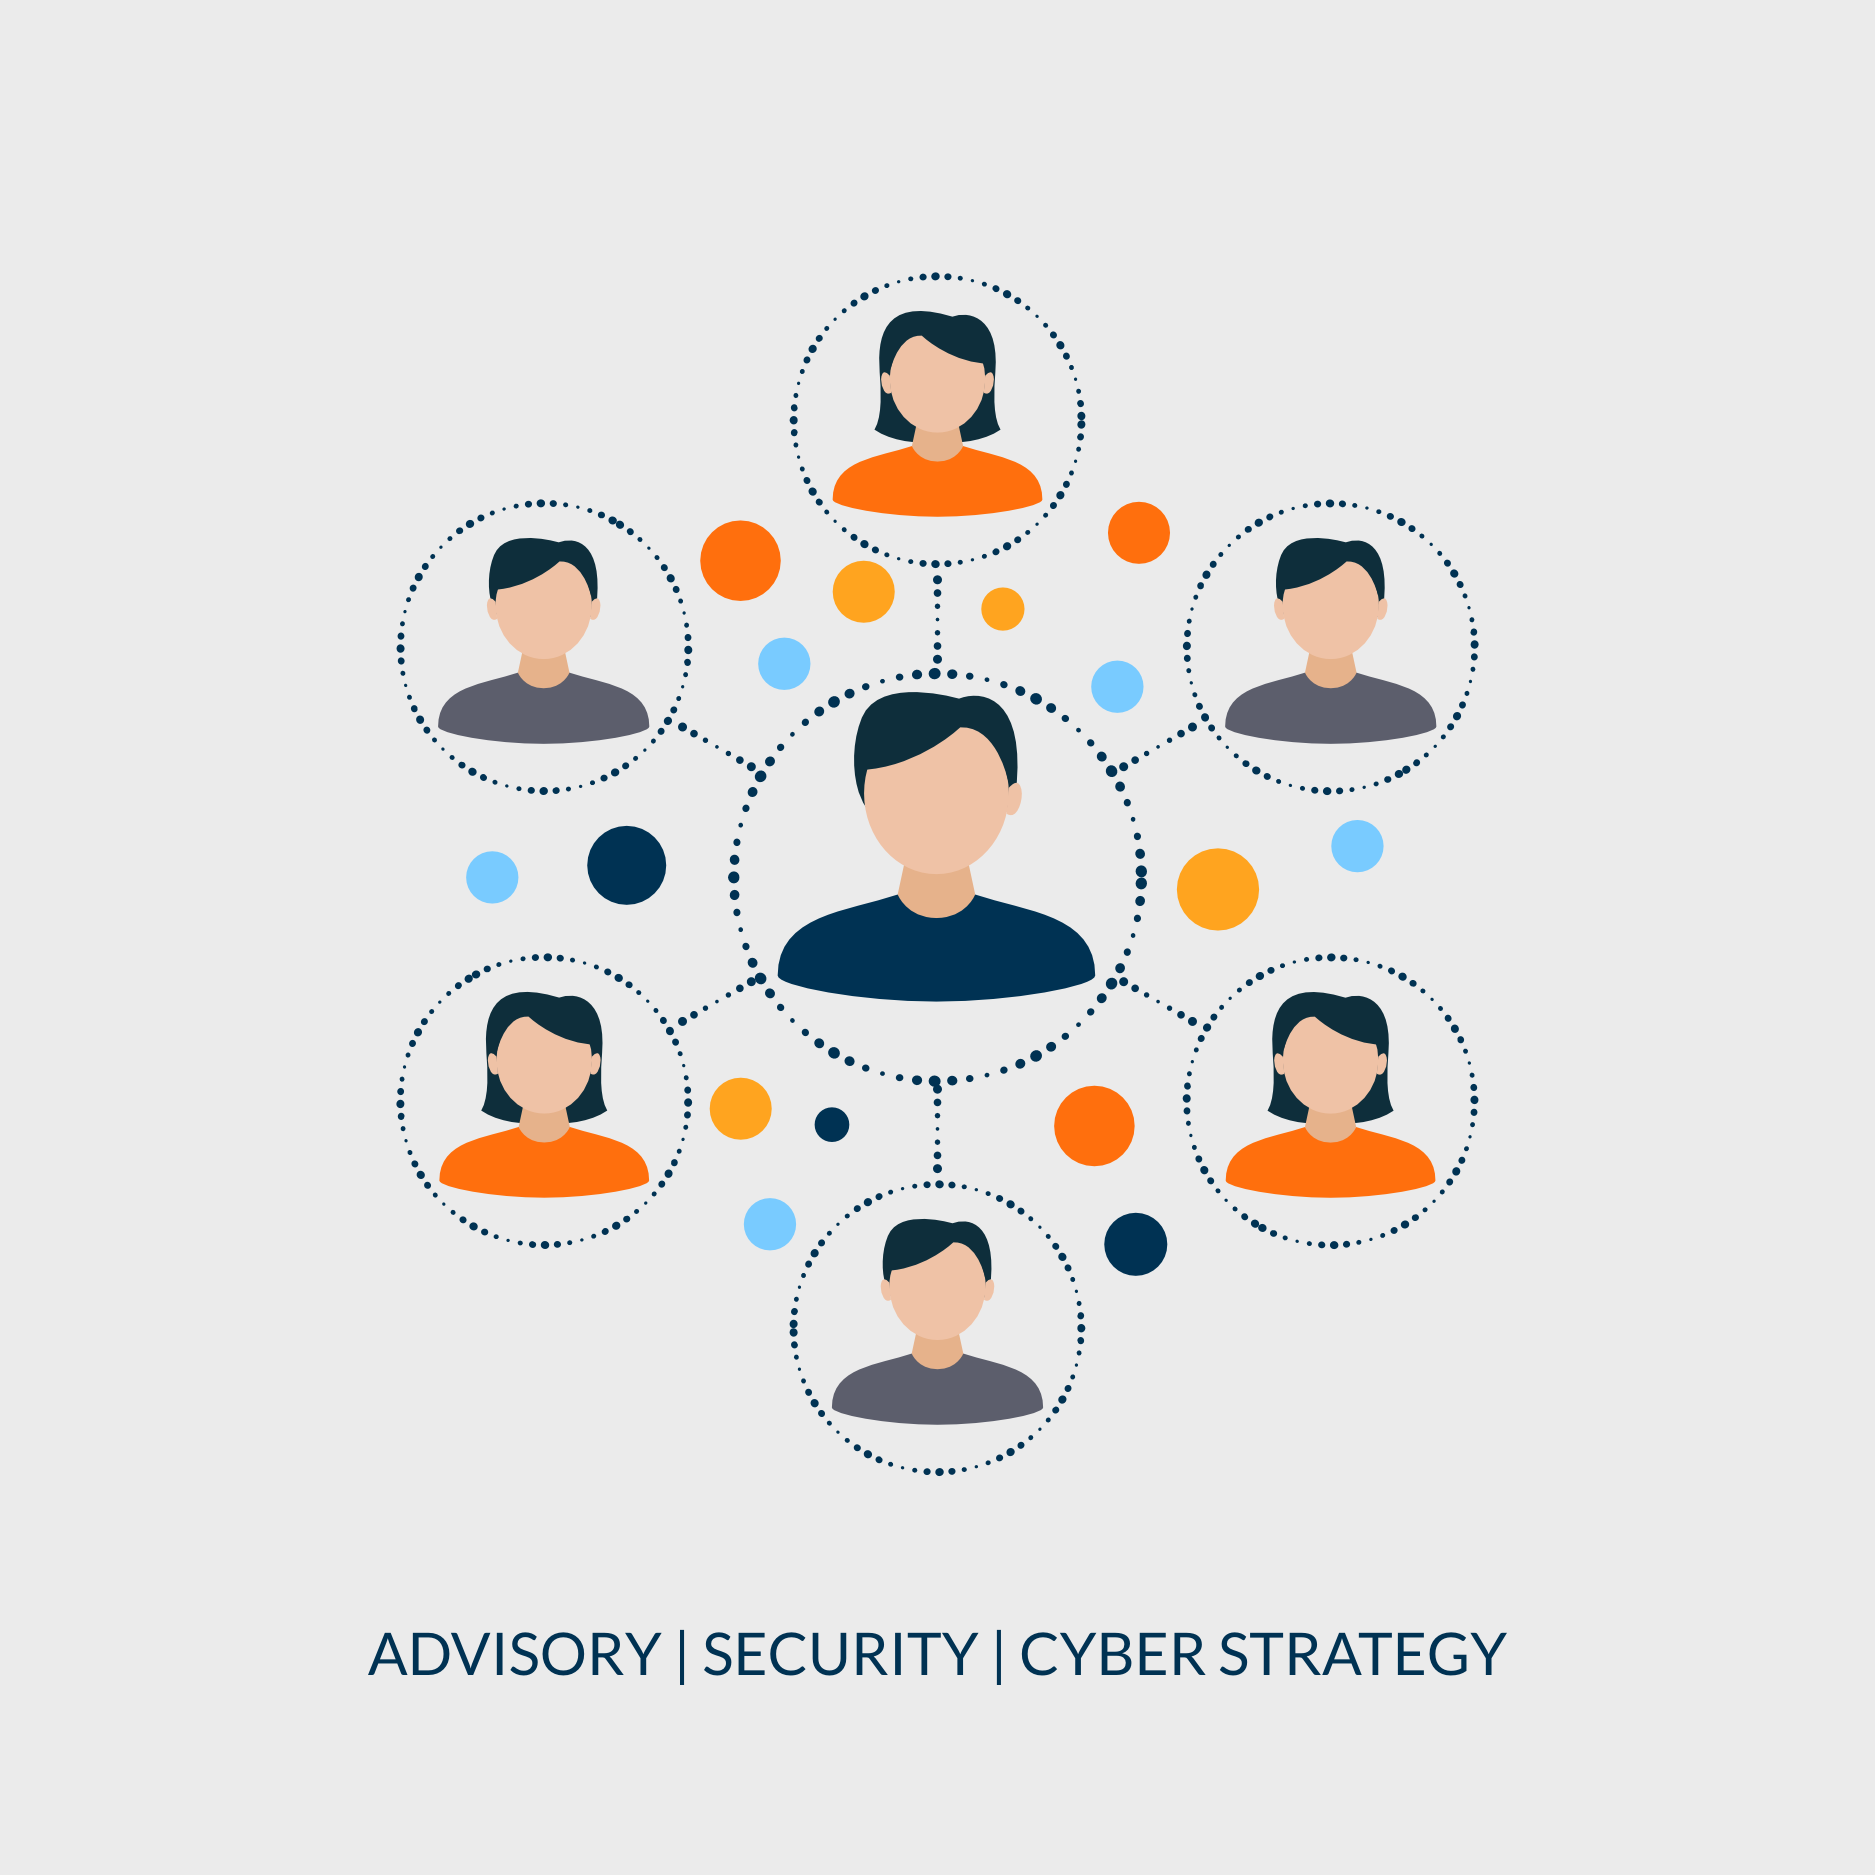 zybrstate advisory security cyber strategy